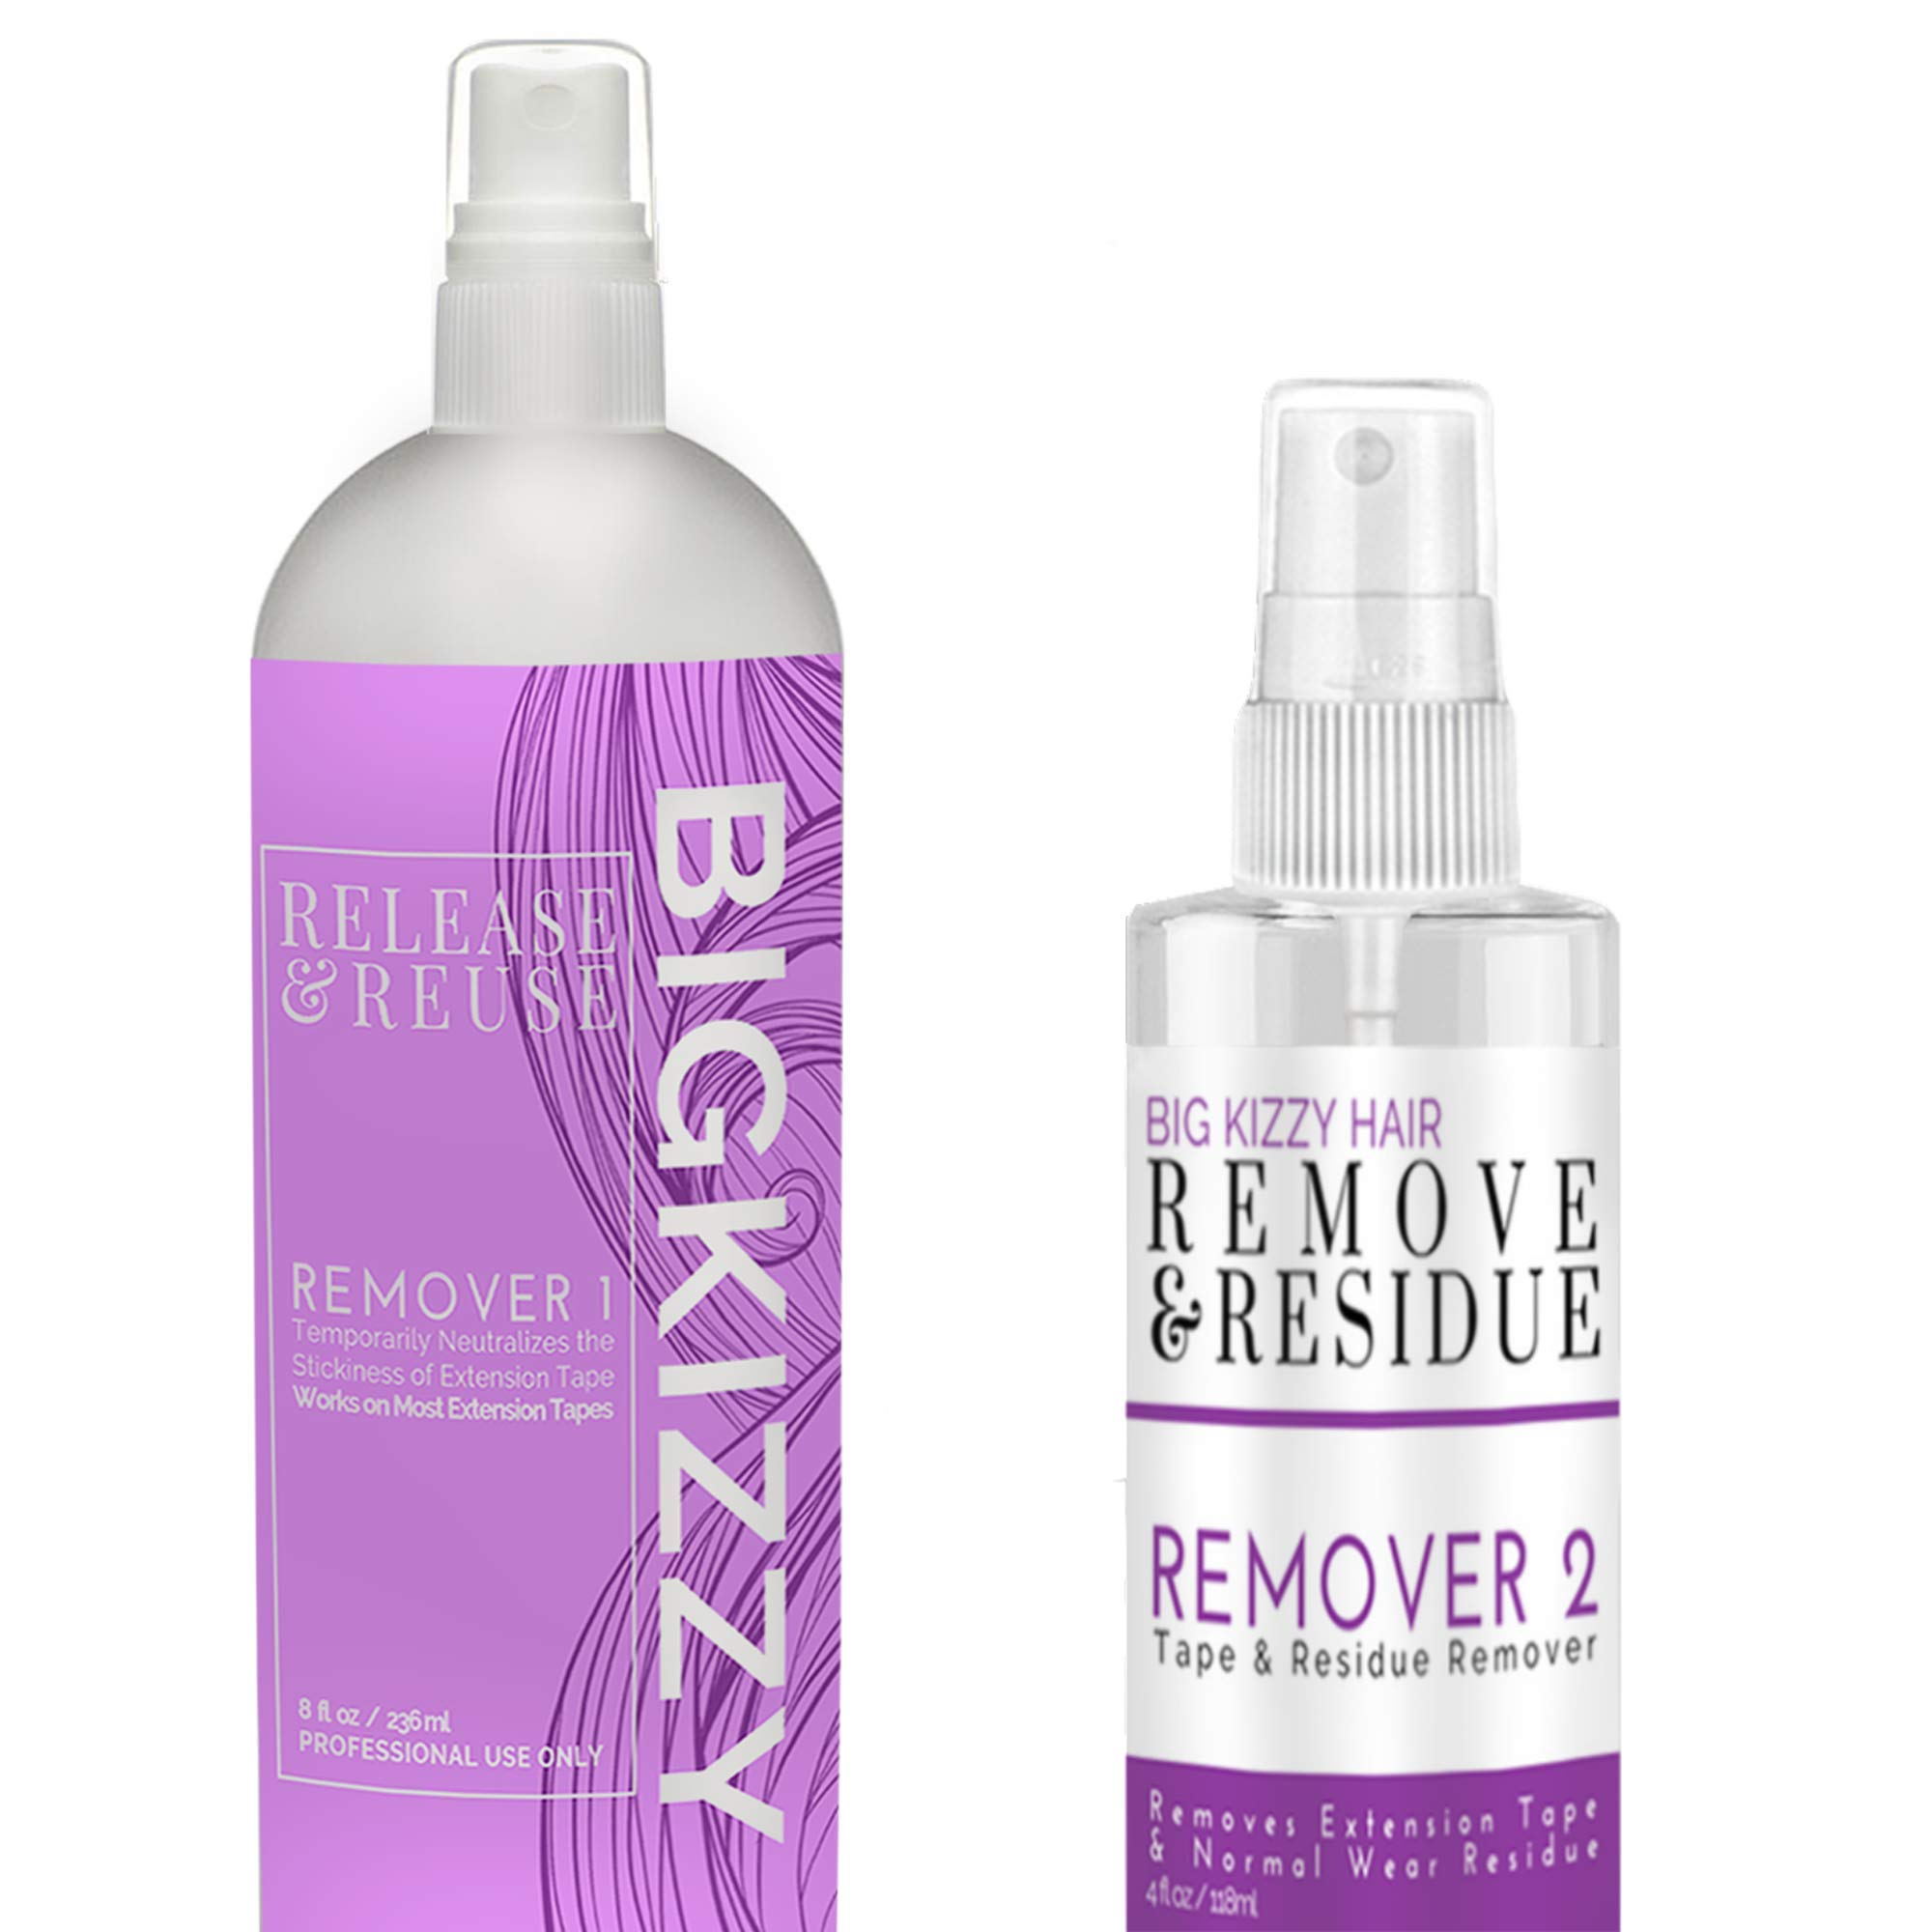 Big Kizzy Remover 1 + Remover 2 bundle, Tested & Proven Fastest & Easiest Adhesive Remover by Big Kizzy